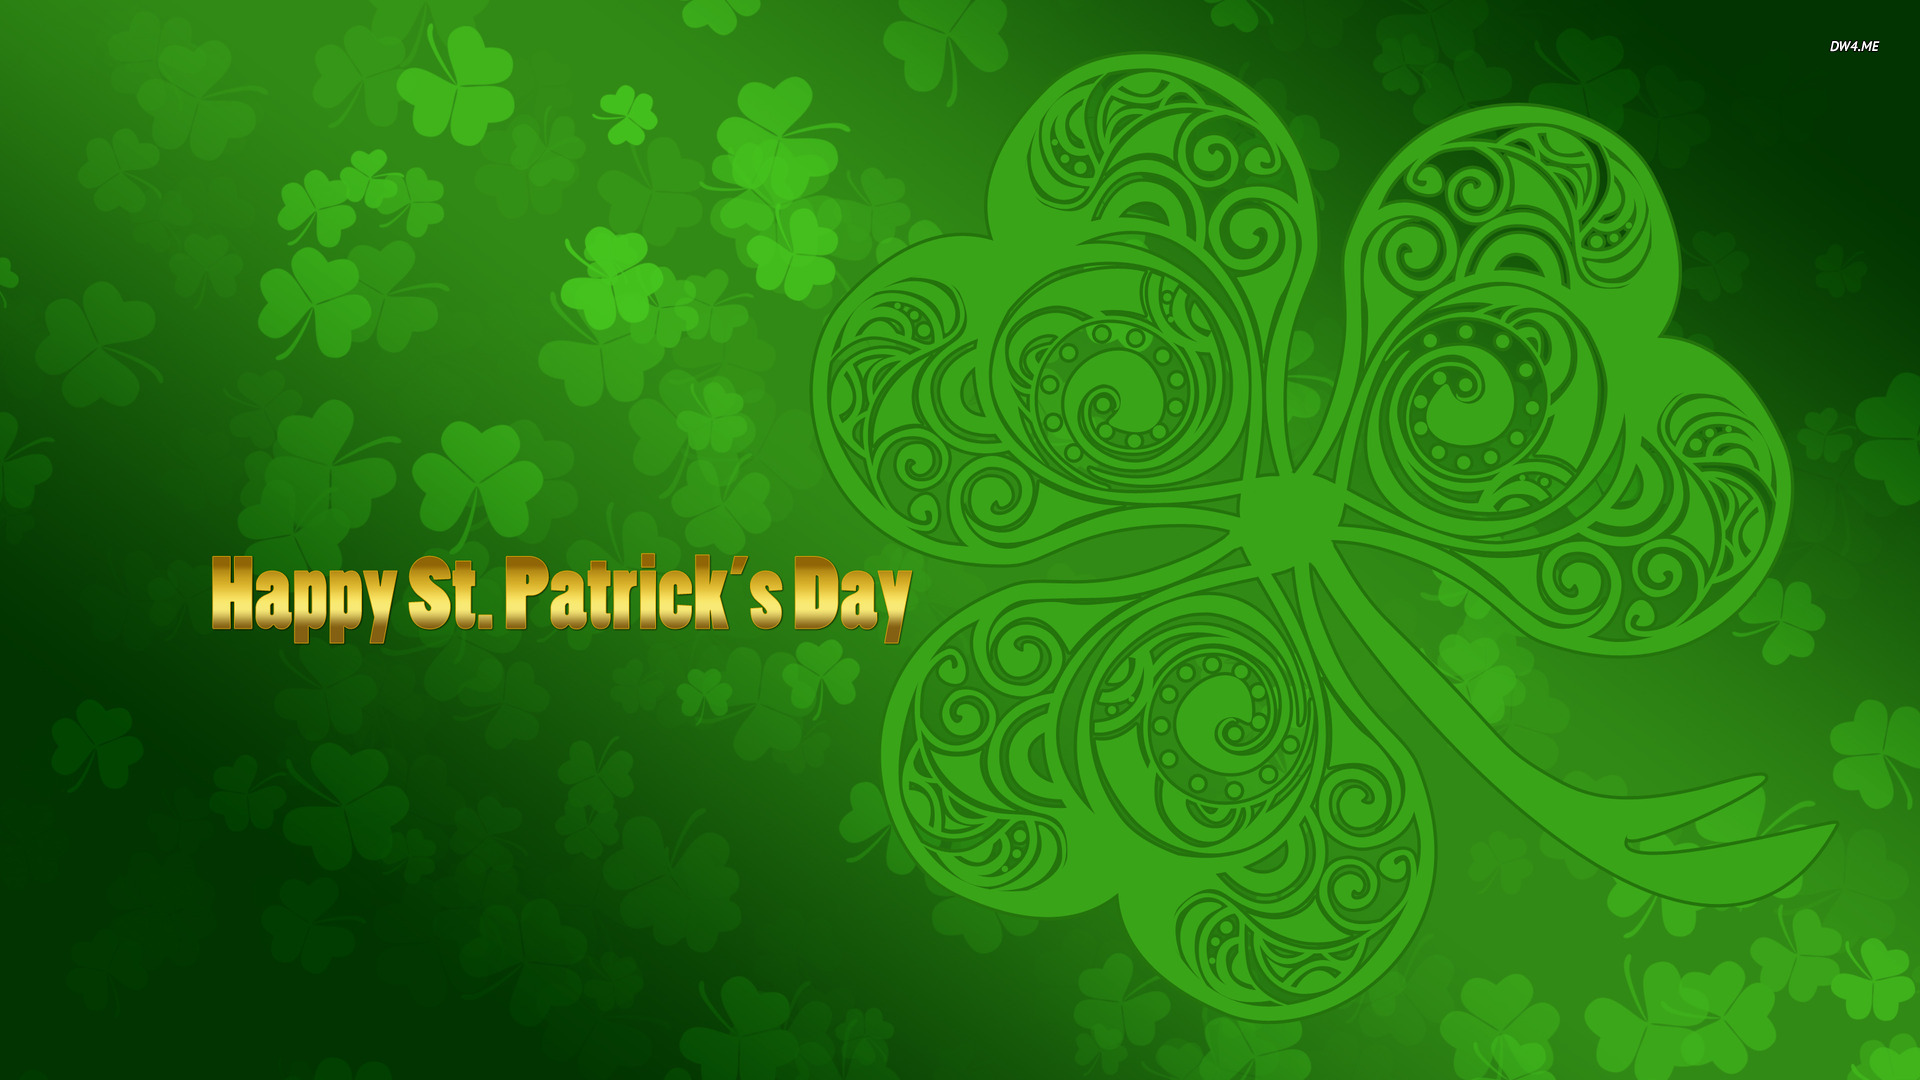 Happy Saint Patricks Day wallpaper   800350 1920x1080